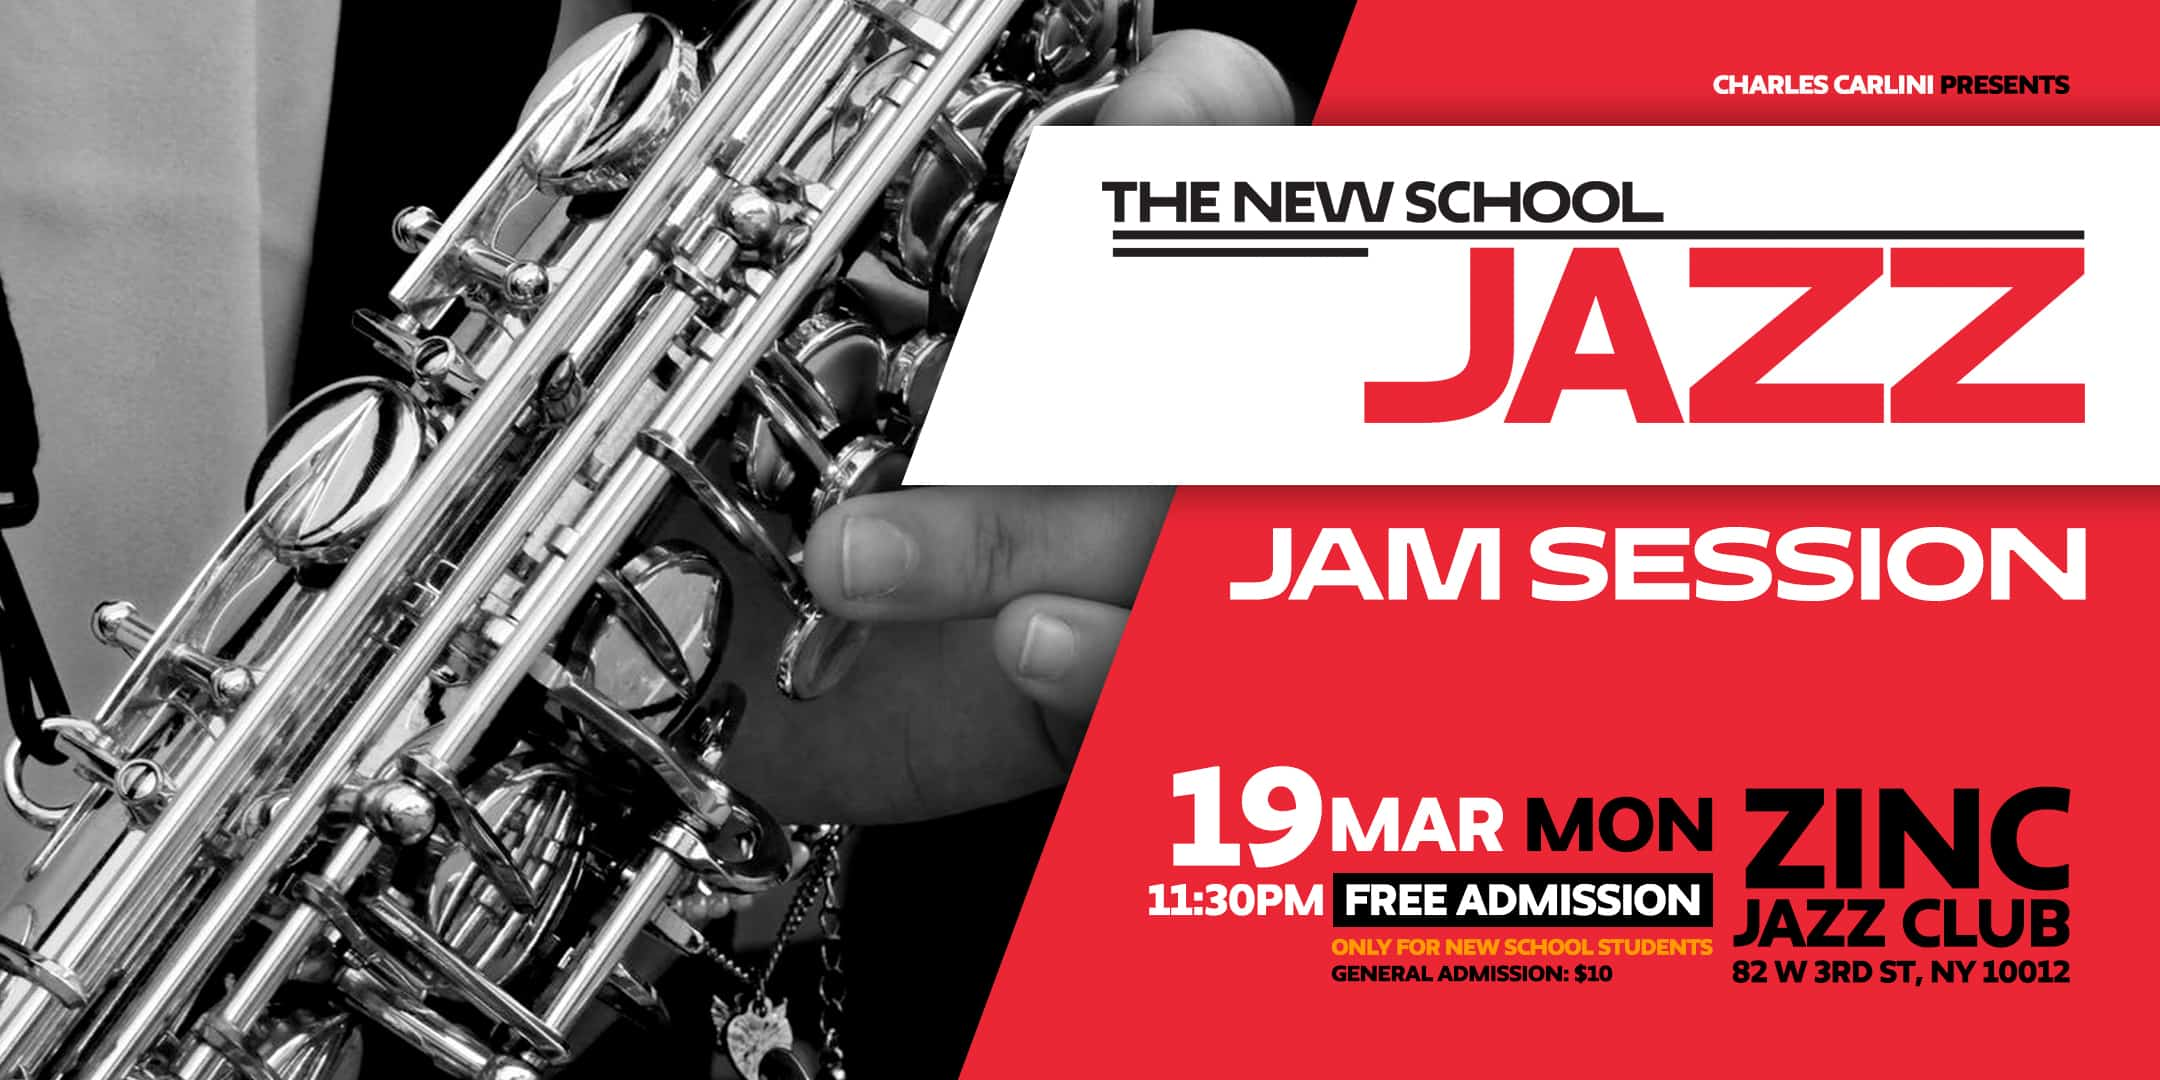 The New School Jazz Jam Session | In Touch Entertainment